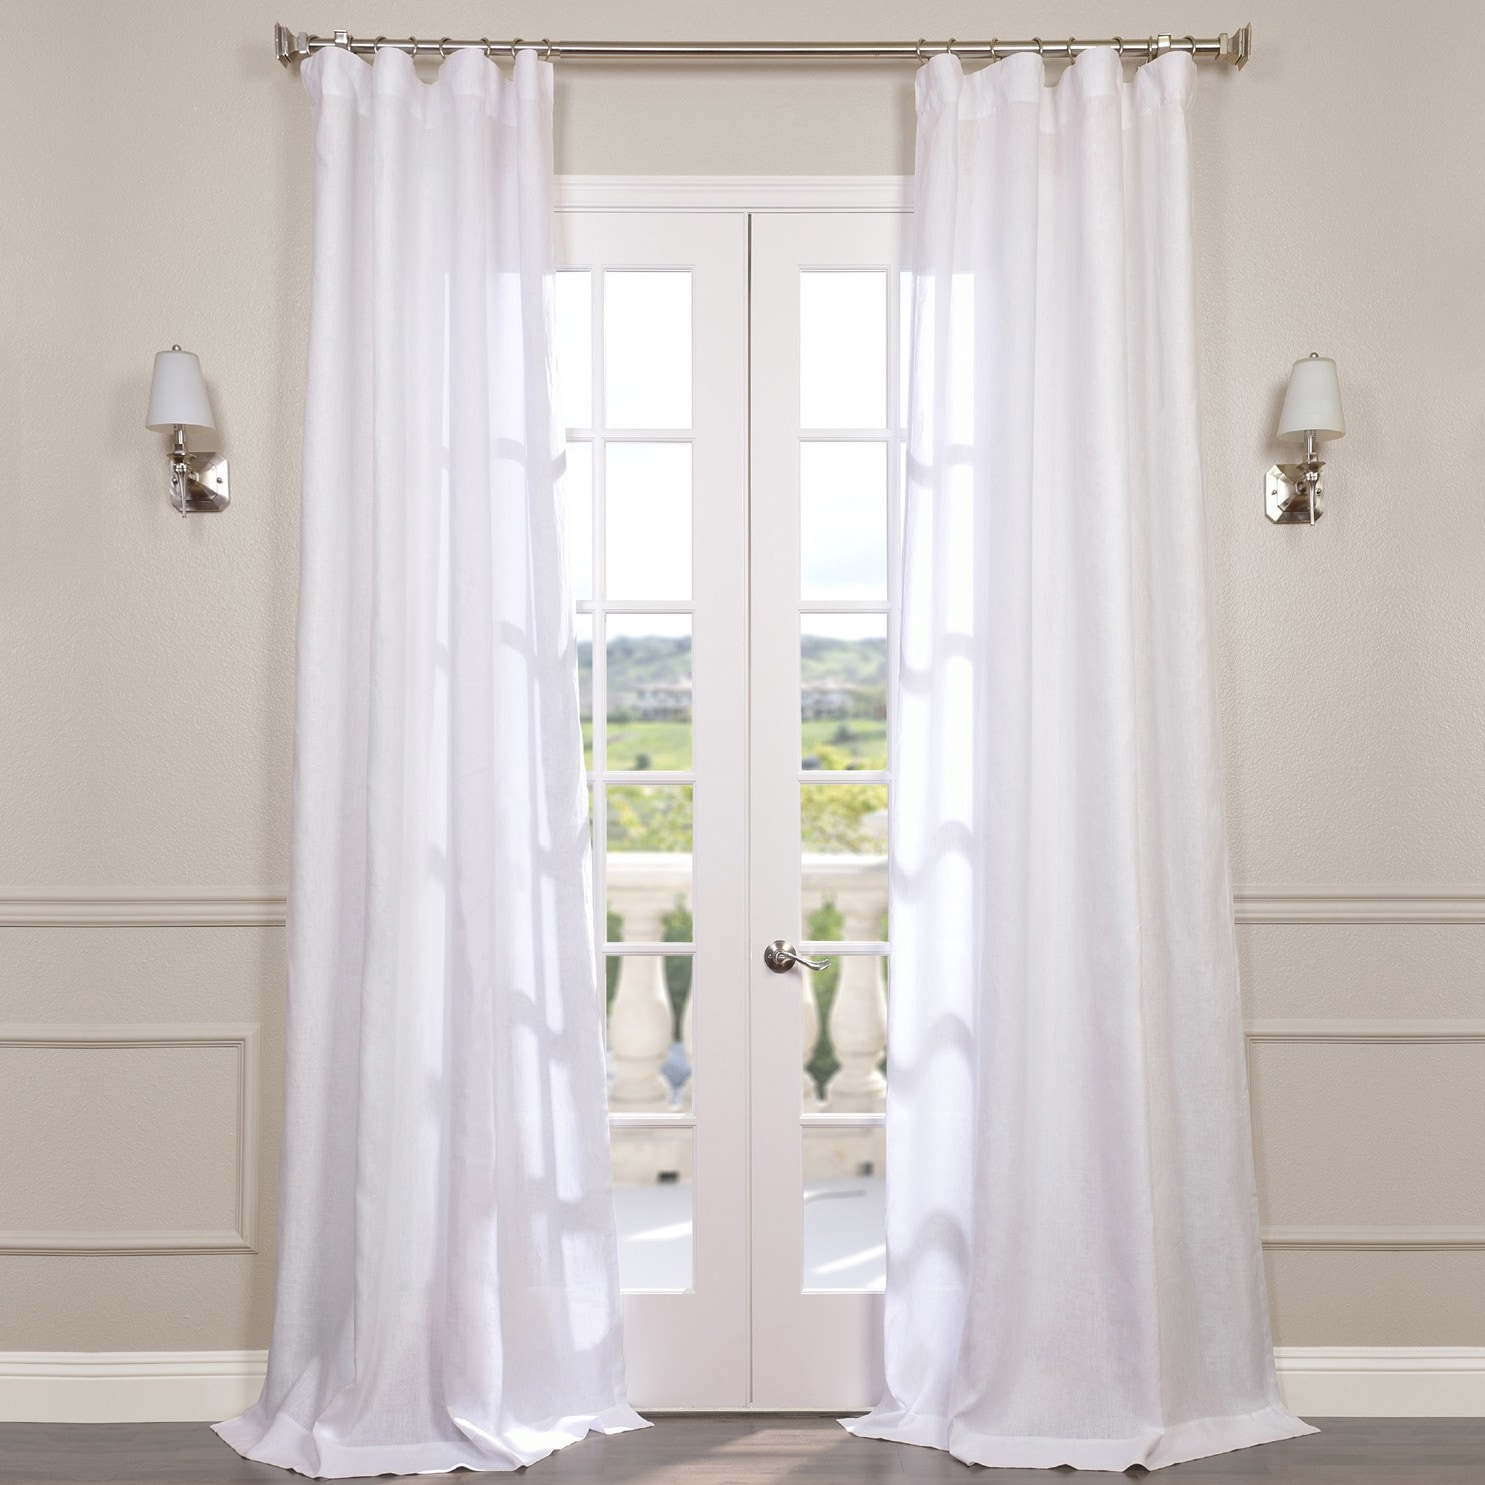 ip x viole qutain window set curtain turquoise linen panels solid drapes sheer of com inch panel walmart two